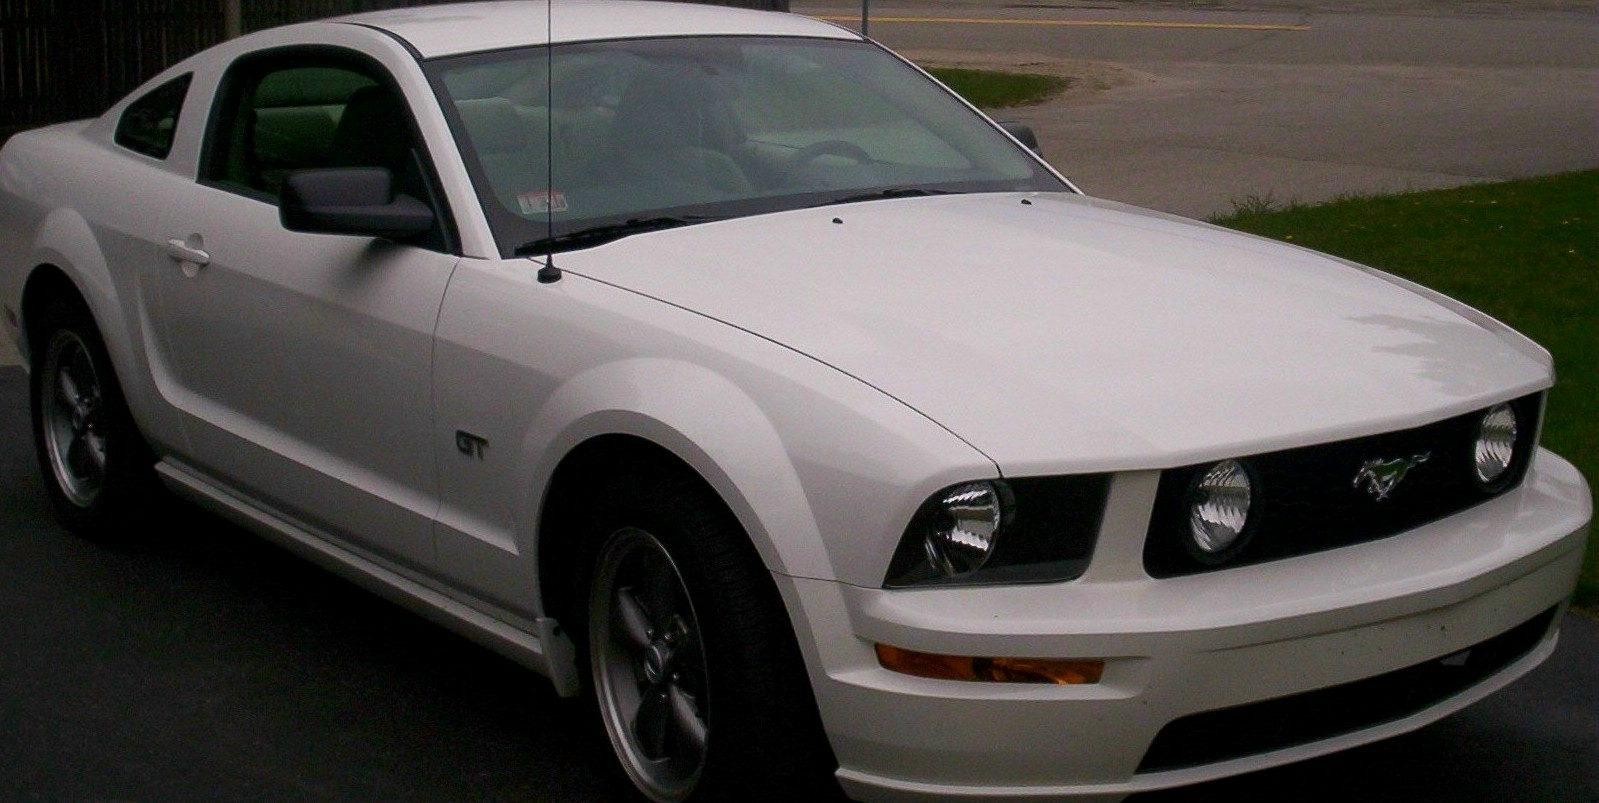 2005  Ford Mustang GT Vortech S-Trim Supercharger picture, mods, upgrades